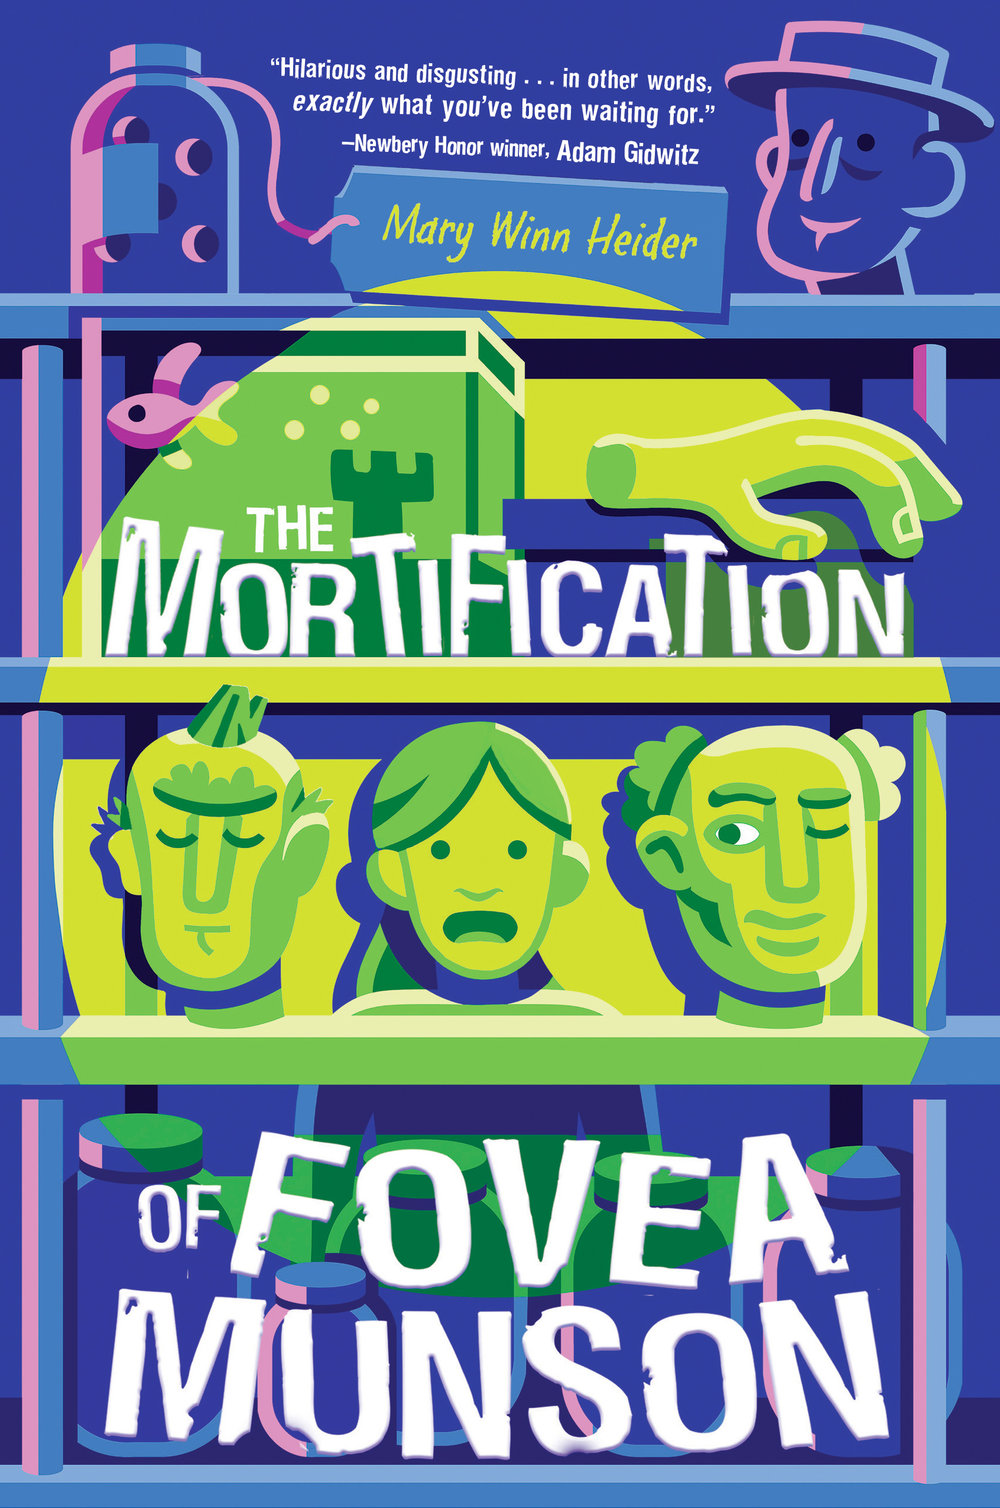 Mortification of Fovea Munson-1-2-1.jpg